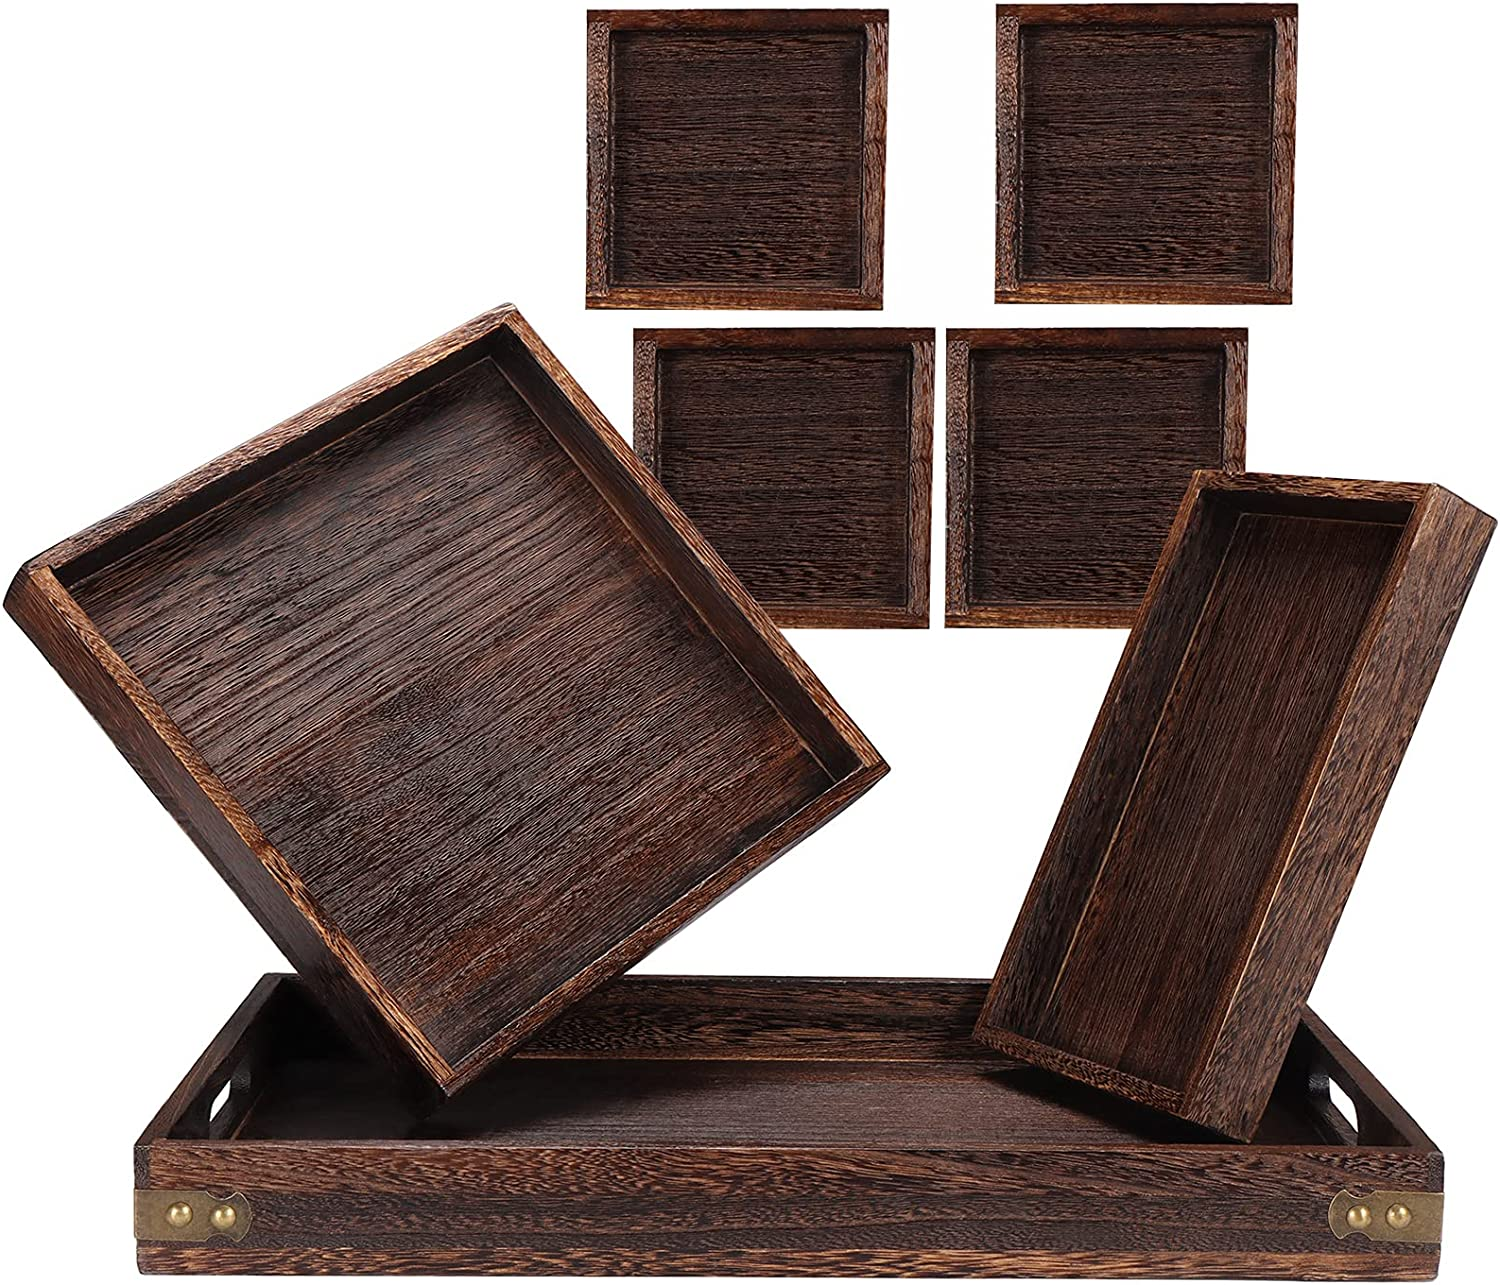 Yunson 7Pack Serving Tray Set,Breakfast Coffee Table Tray Ottoman Tray,Serve and Display Appetizers, Snacks, Bar Food Platter, and Rustic Farmhouse Home Decor Decorative Tray